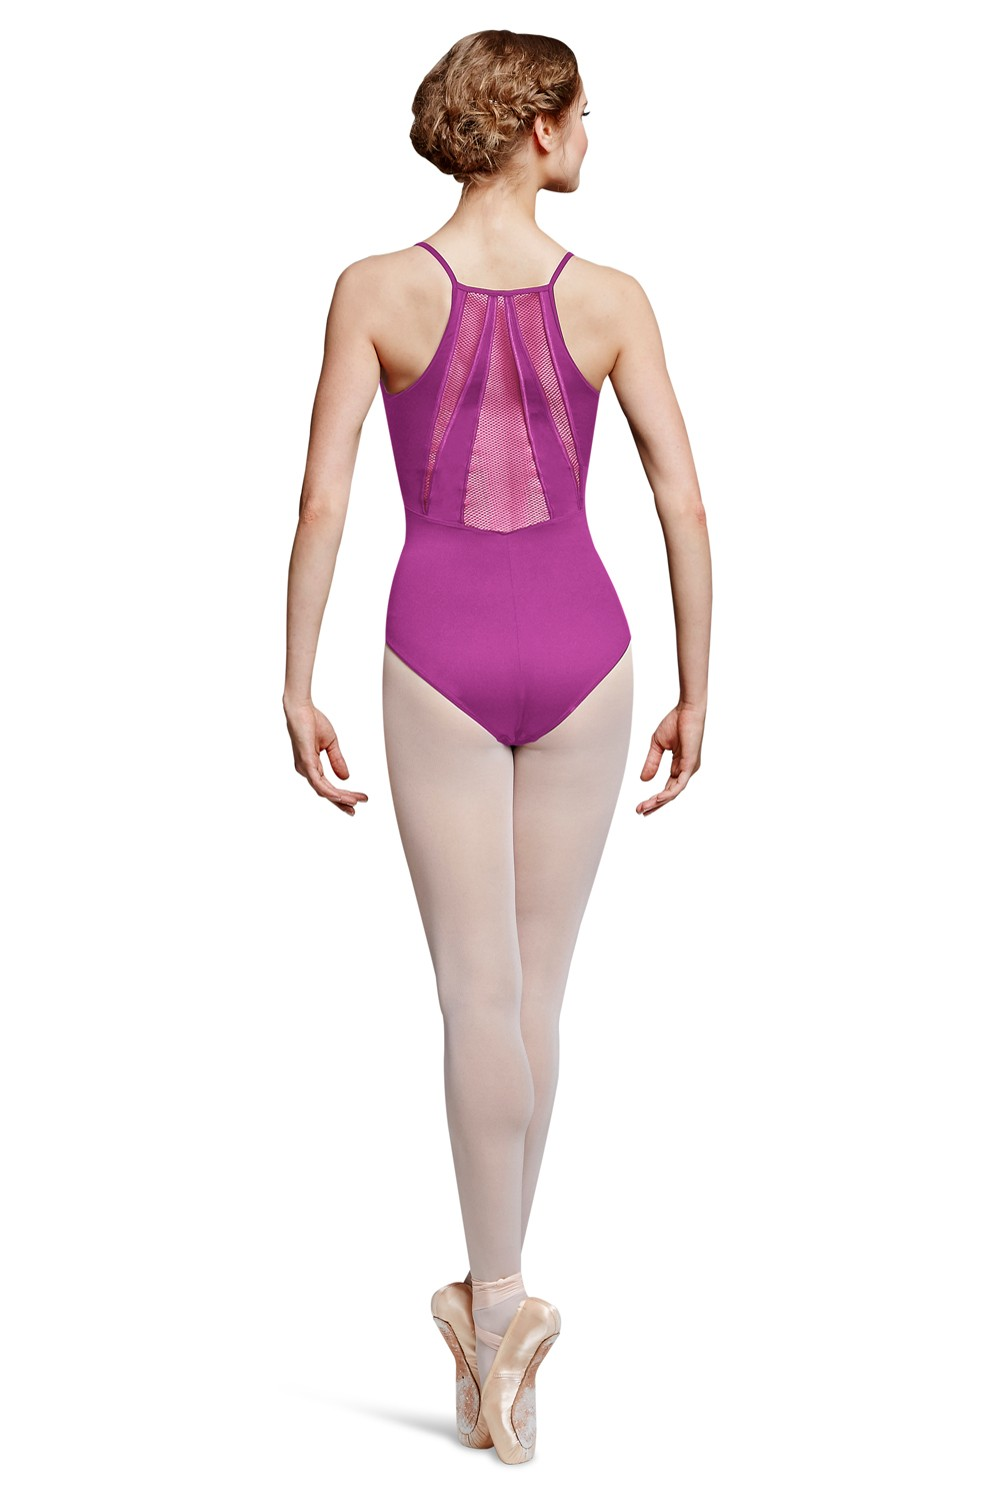 Topaz Women's Dance Leotards